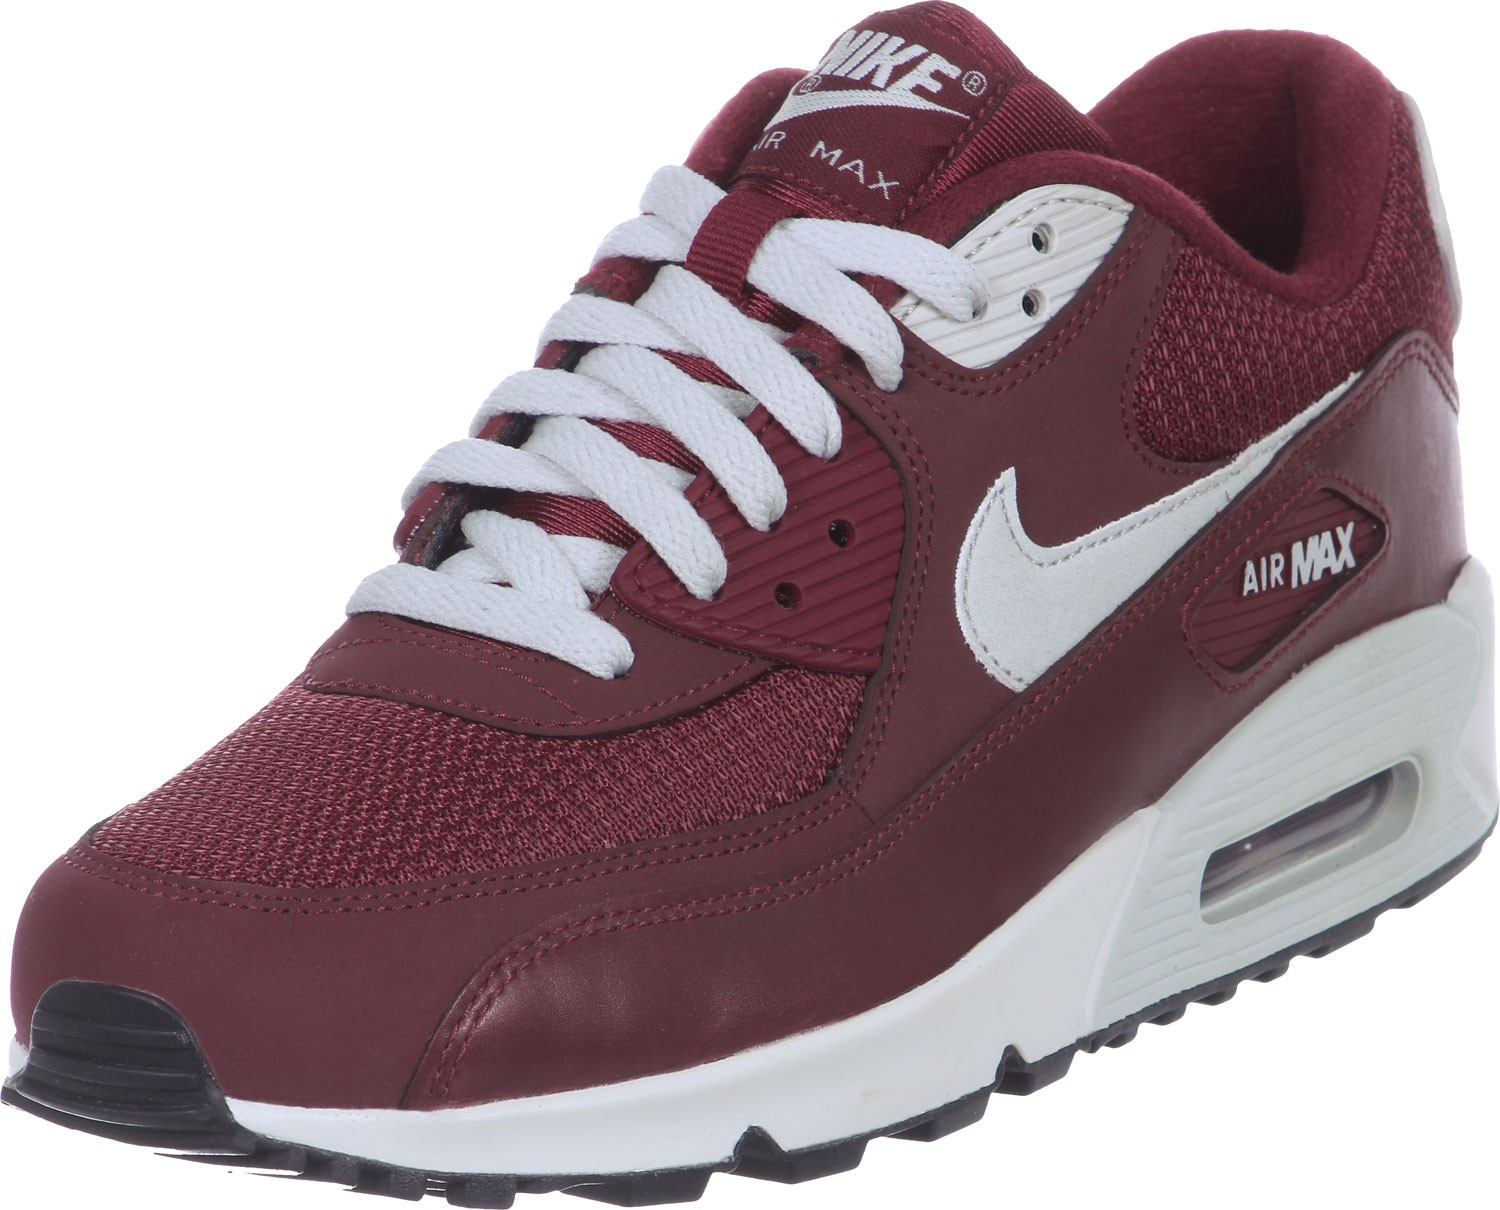 quality design 203af 6e601 nike air max 90 rouge bordeaux ... Nike AIR MAX 1 ULTRA FLYKNIT Homme  Violet Rouge Bordeaux Sneakers basses ... Femme Nike Air Max 95 Essential  Chaussures ...